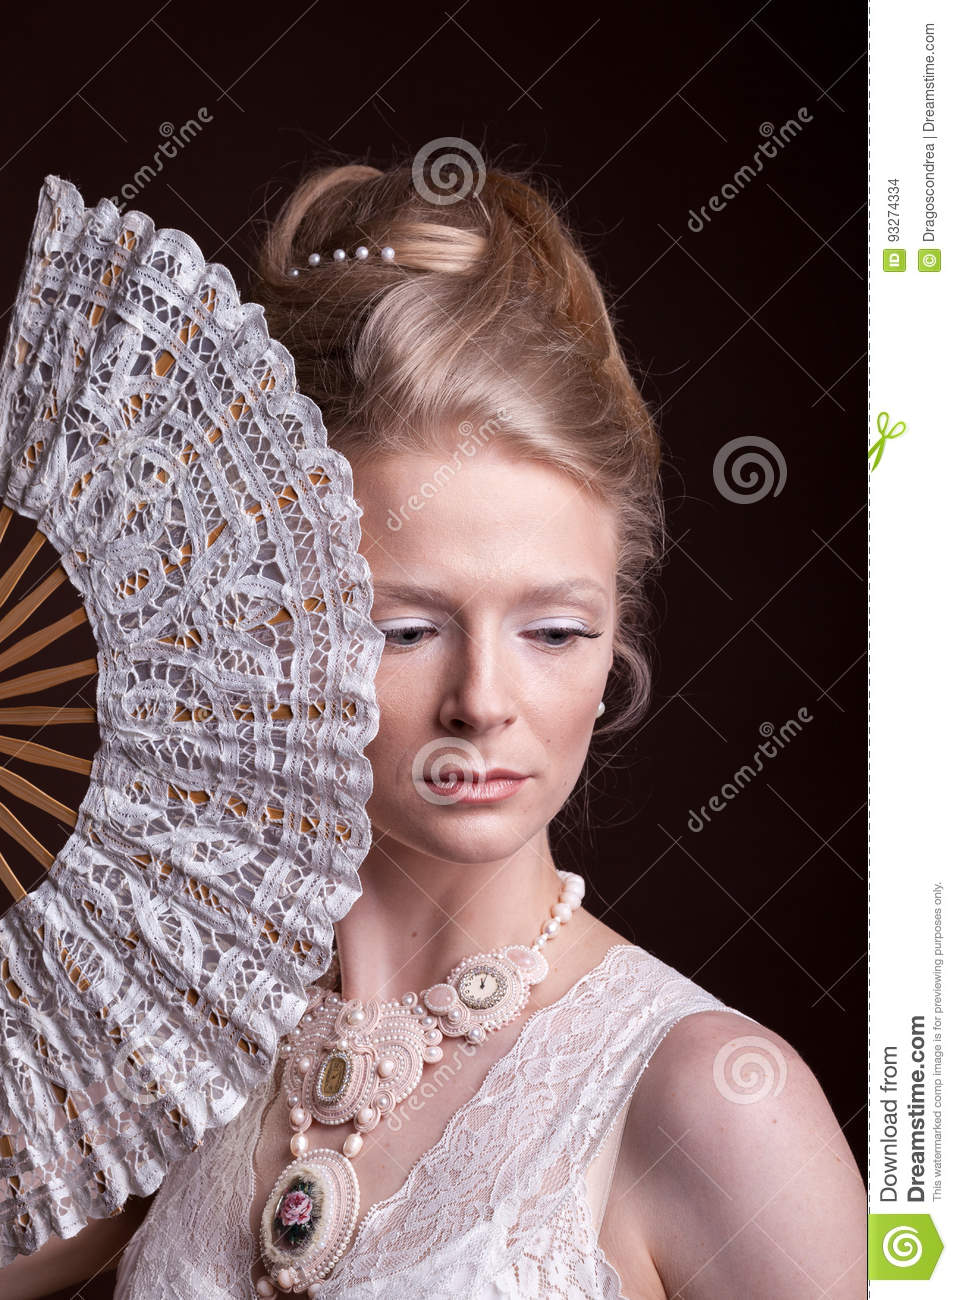 760 Oriental Fan Woman Face Photos Free Royalty Free Stock Photos From Dreamstime